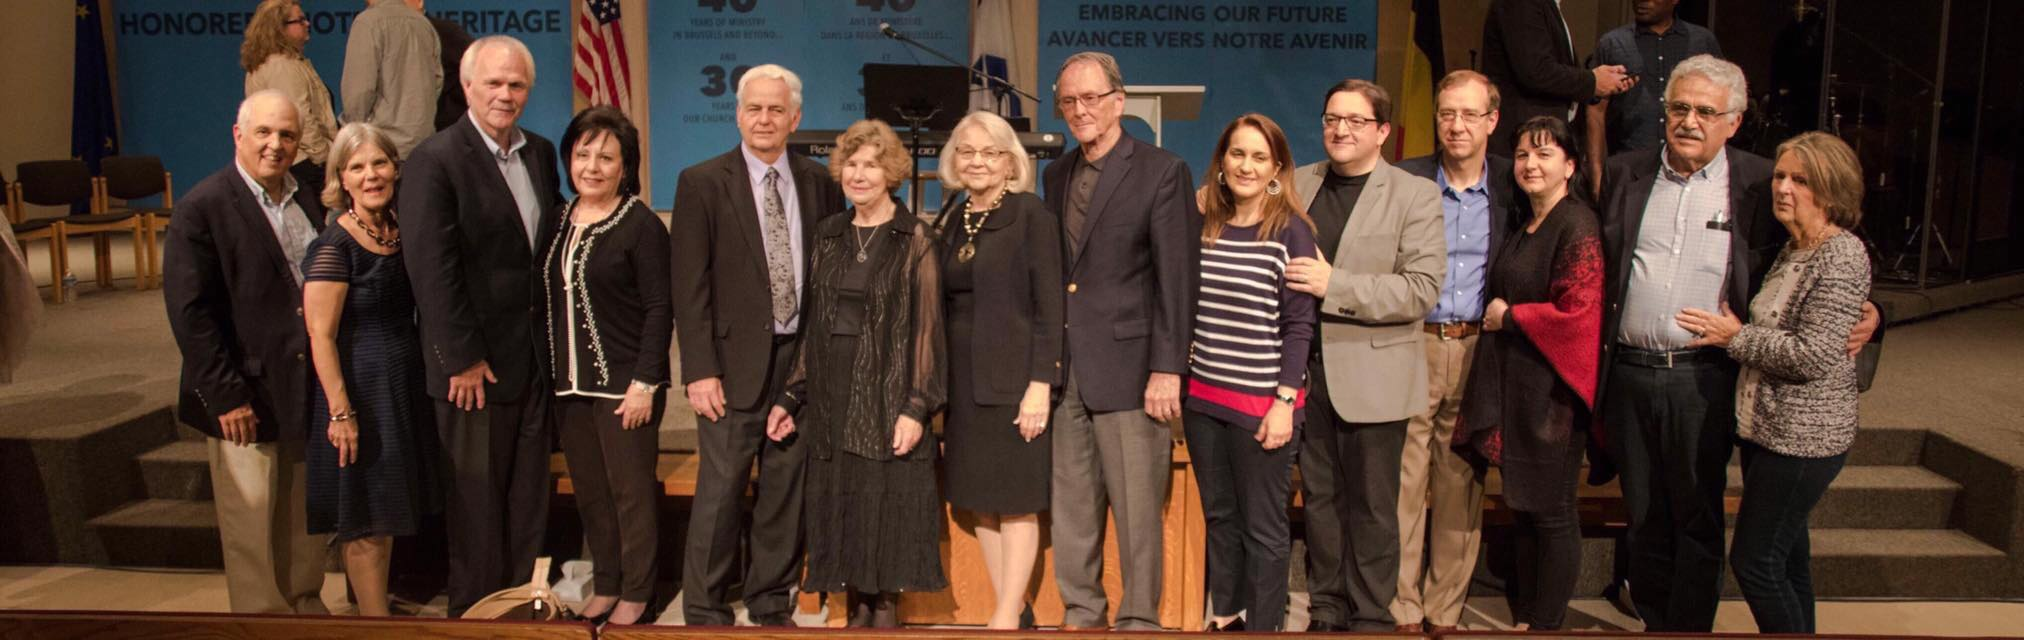 Brussels Christian Ceenter Homecoming Anniversary Weekend (May 17-19, 2019)